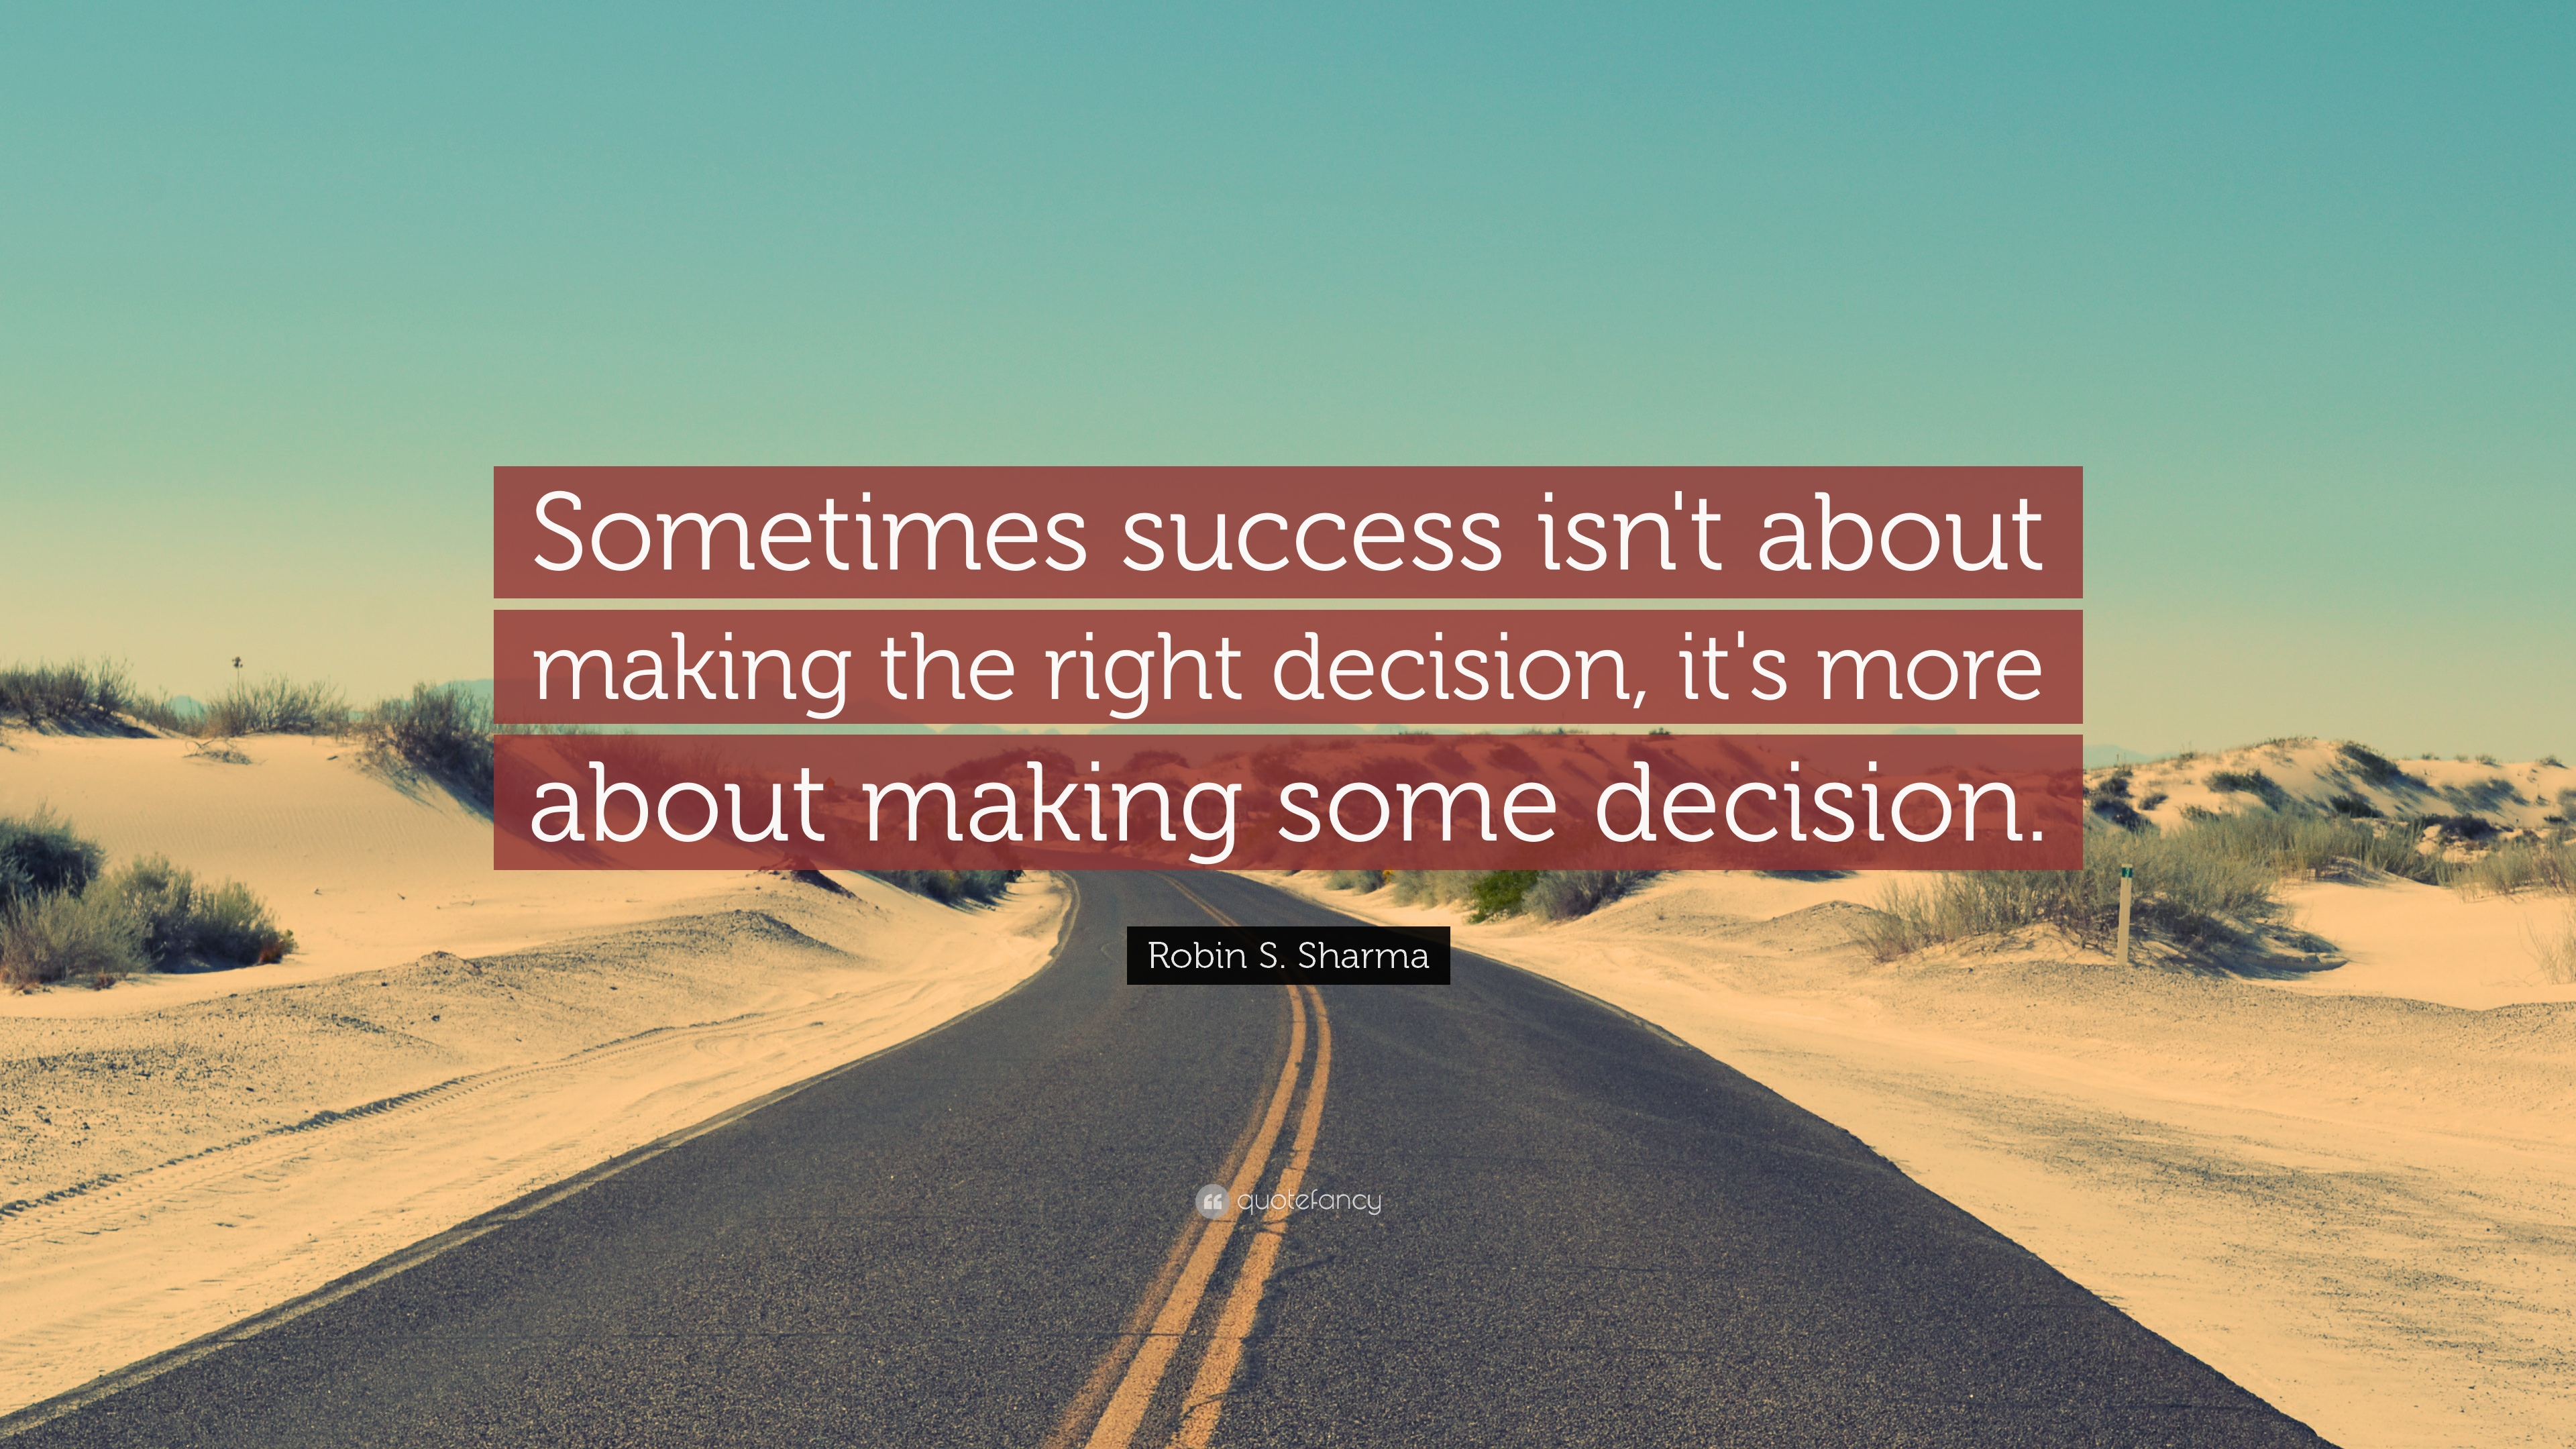 Robin S Sharma Quote: '� Sometimes Success Isn't About Making The Right